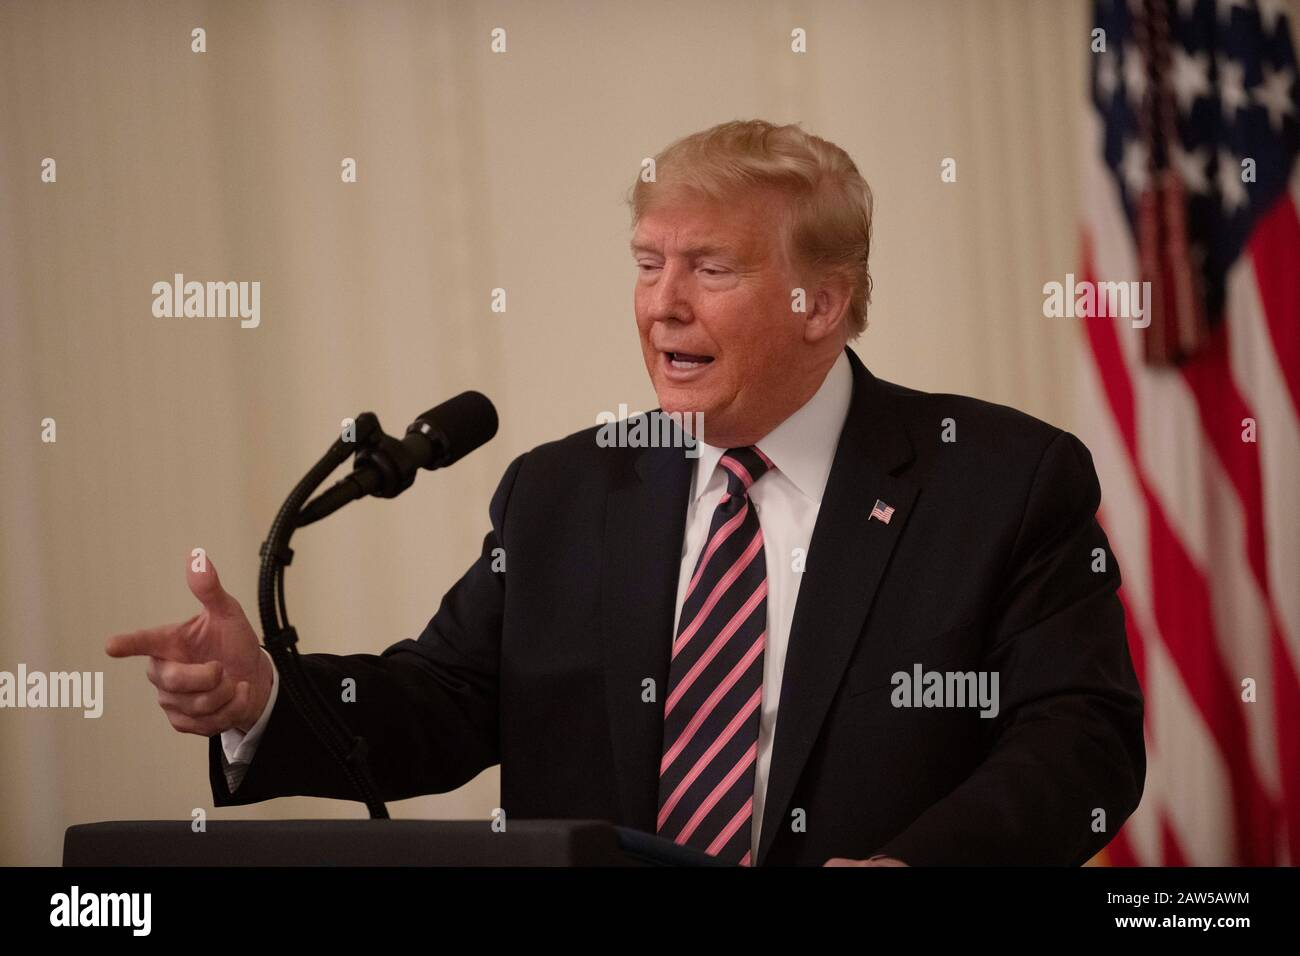 Washington, USA. 6th Feb, 2020. U.S. President Donald Trump makes a statement about his acquittal at the White House in Washington, DC, the United States, on Feb. 6, 2020. Donald Trump took a victory lap Thursday, a day after a divided Senate voted to acquit him on impeachment charges. Credit: Liu Jie/Xinhua/Alamy Live News Stock Photo